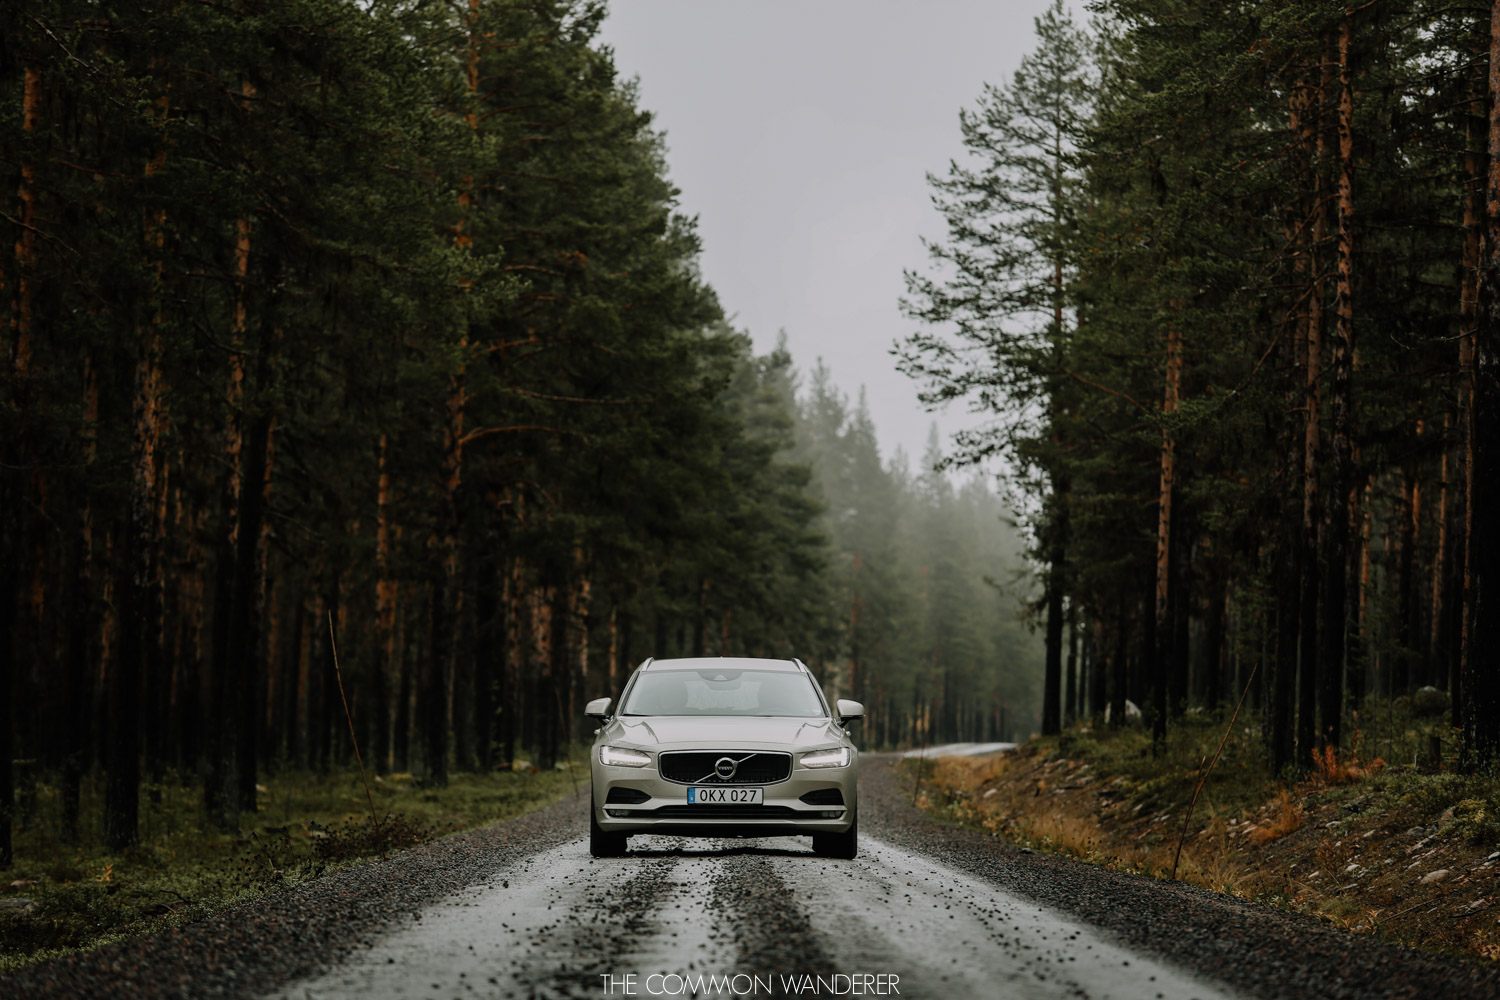 A Volvo road trip in Swedish Lapland